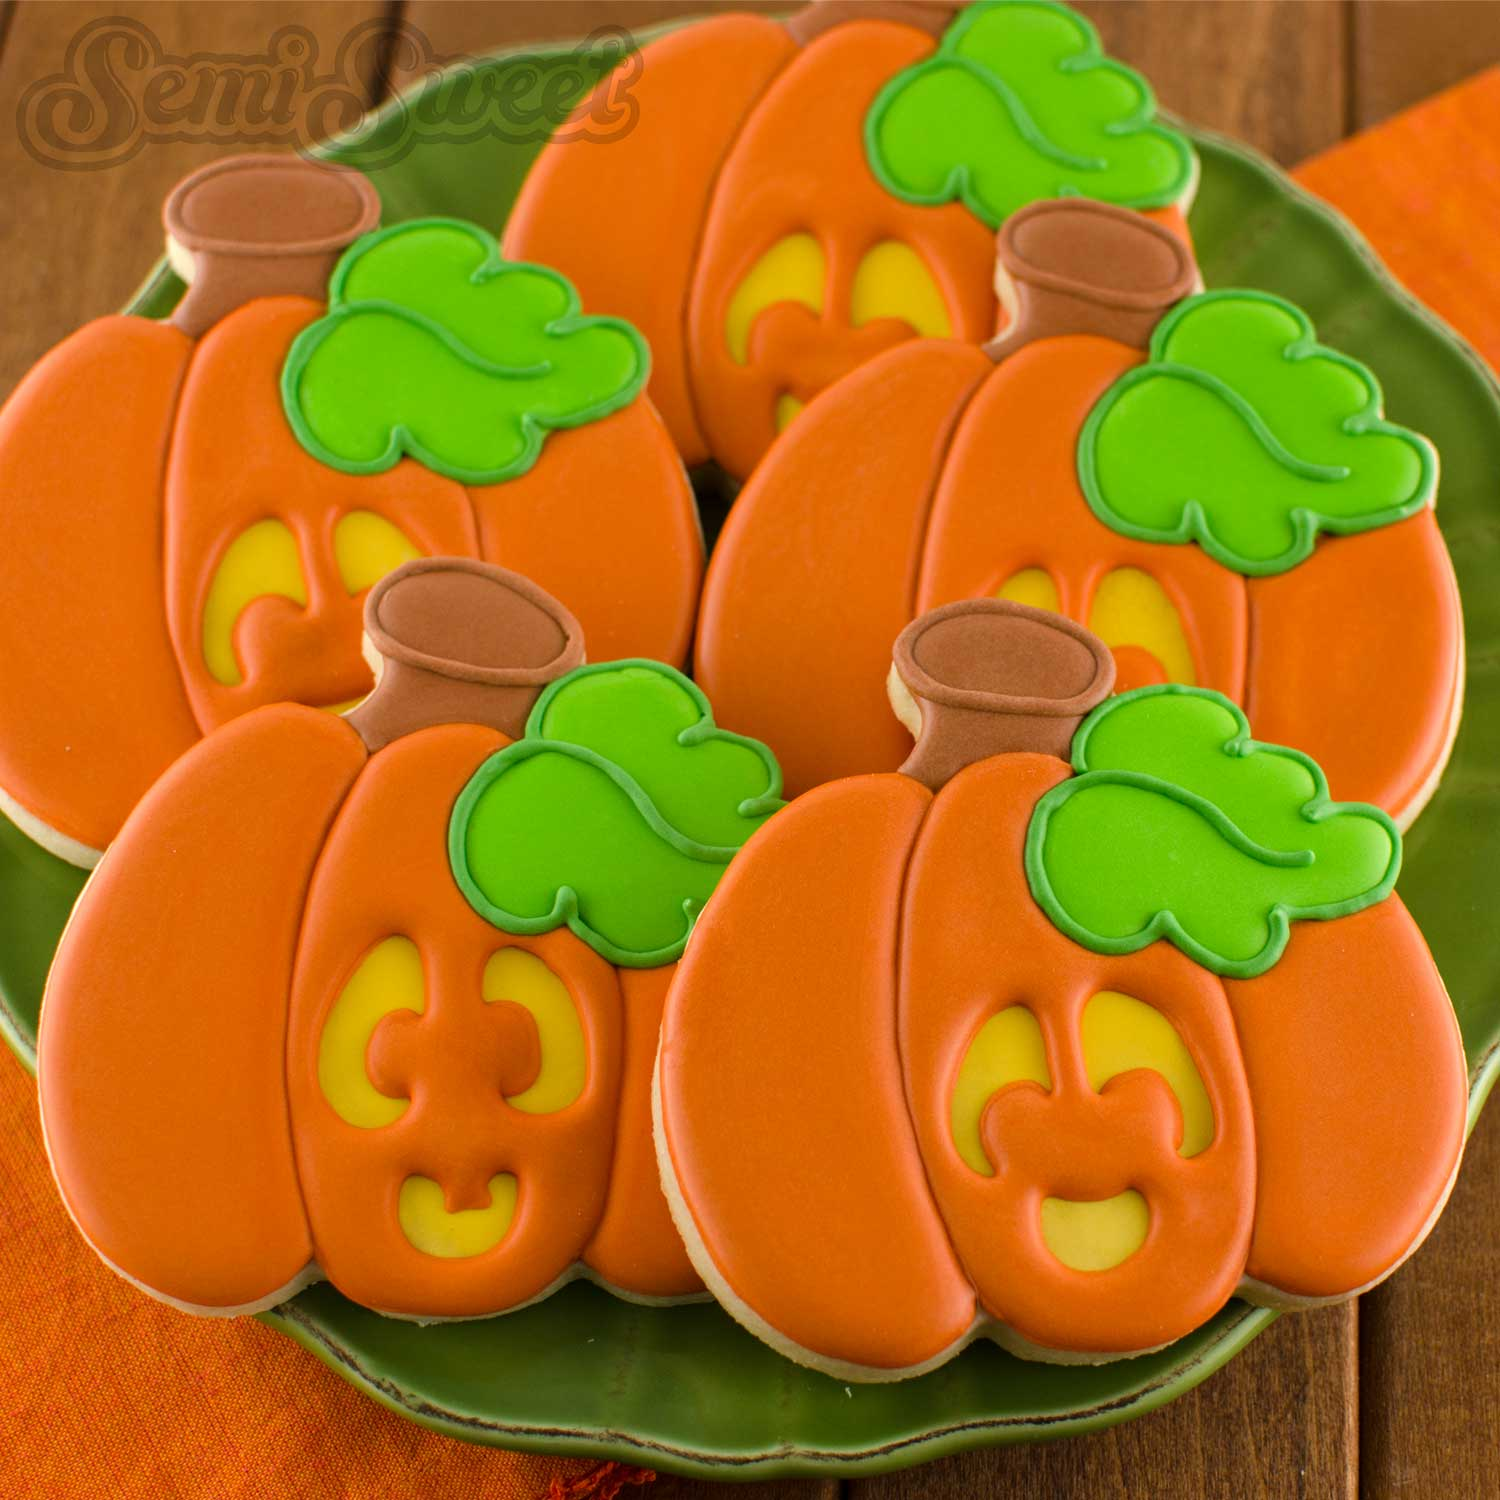 How to Make Jack O' Lantern Cookies